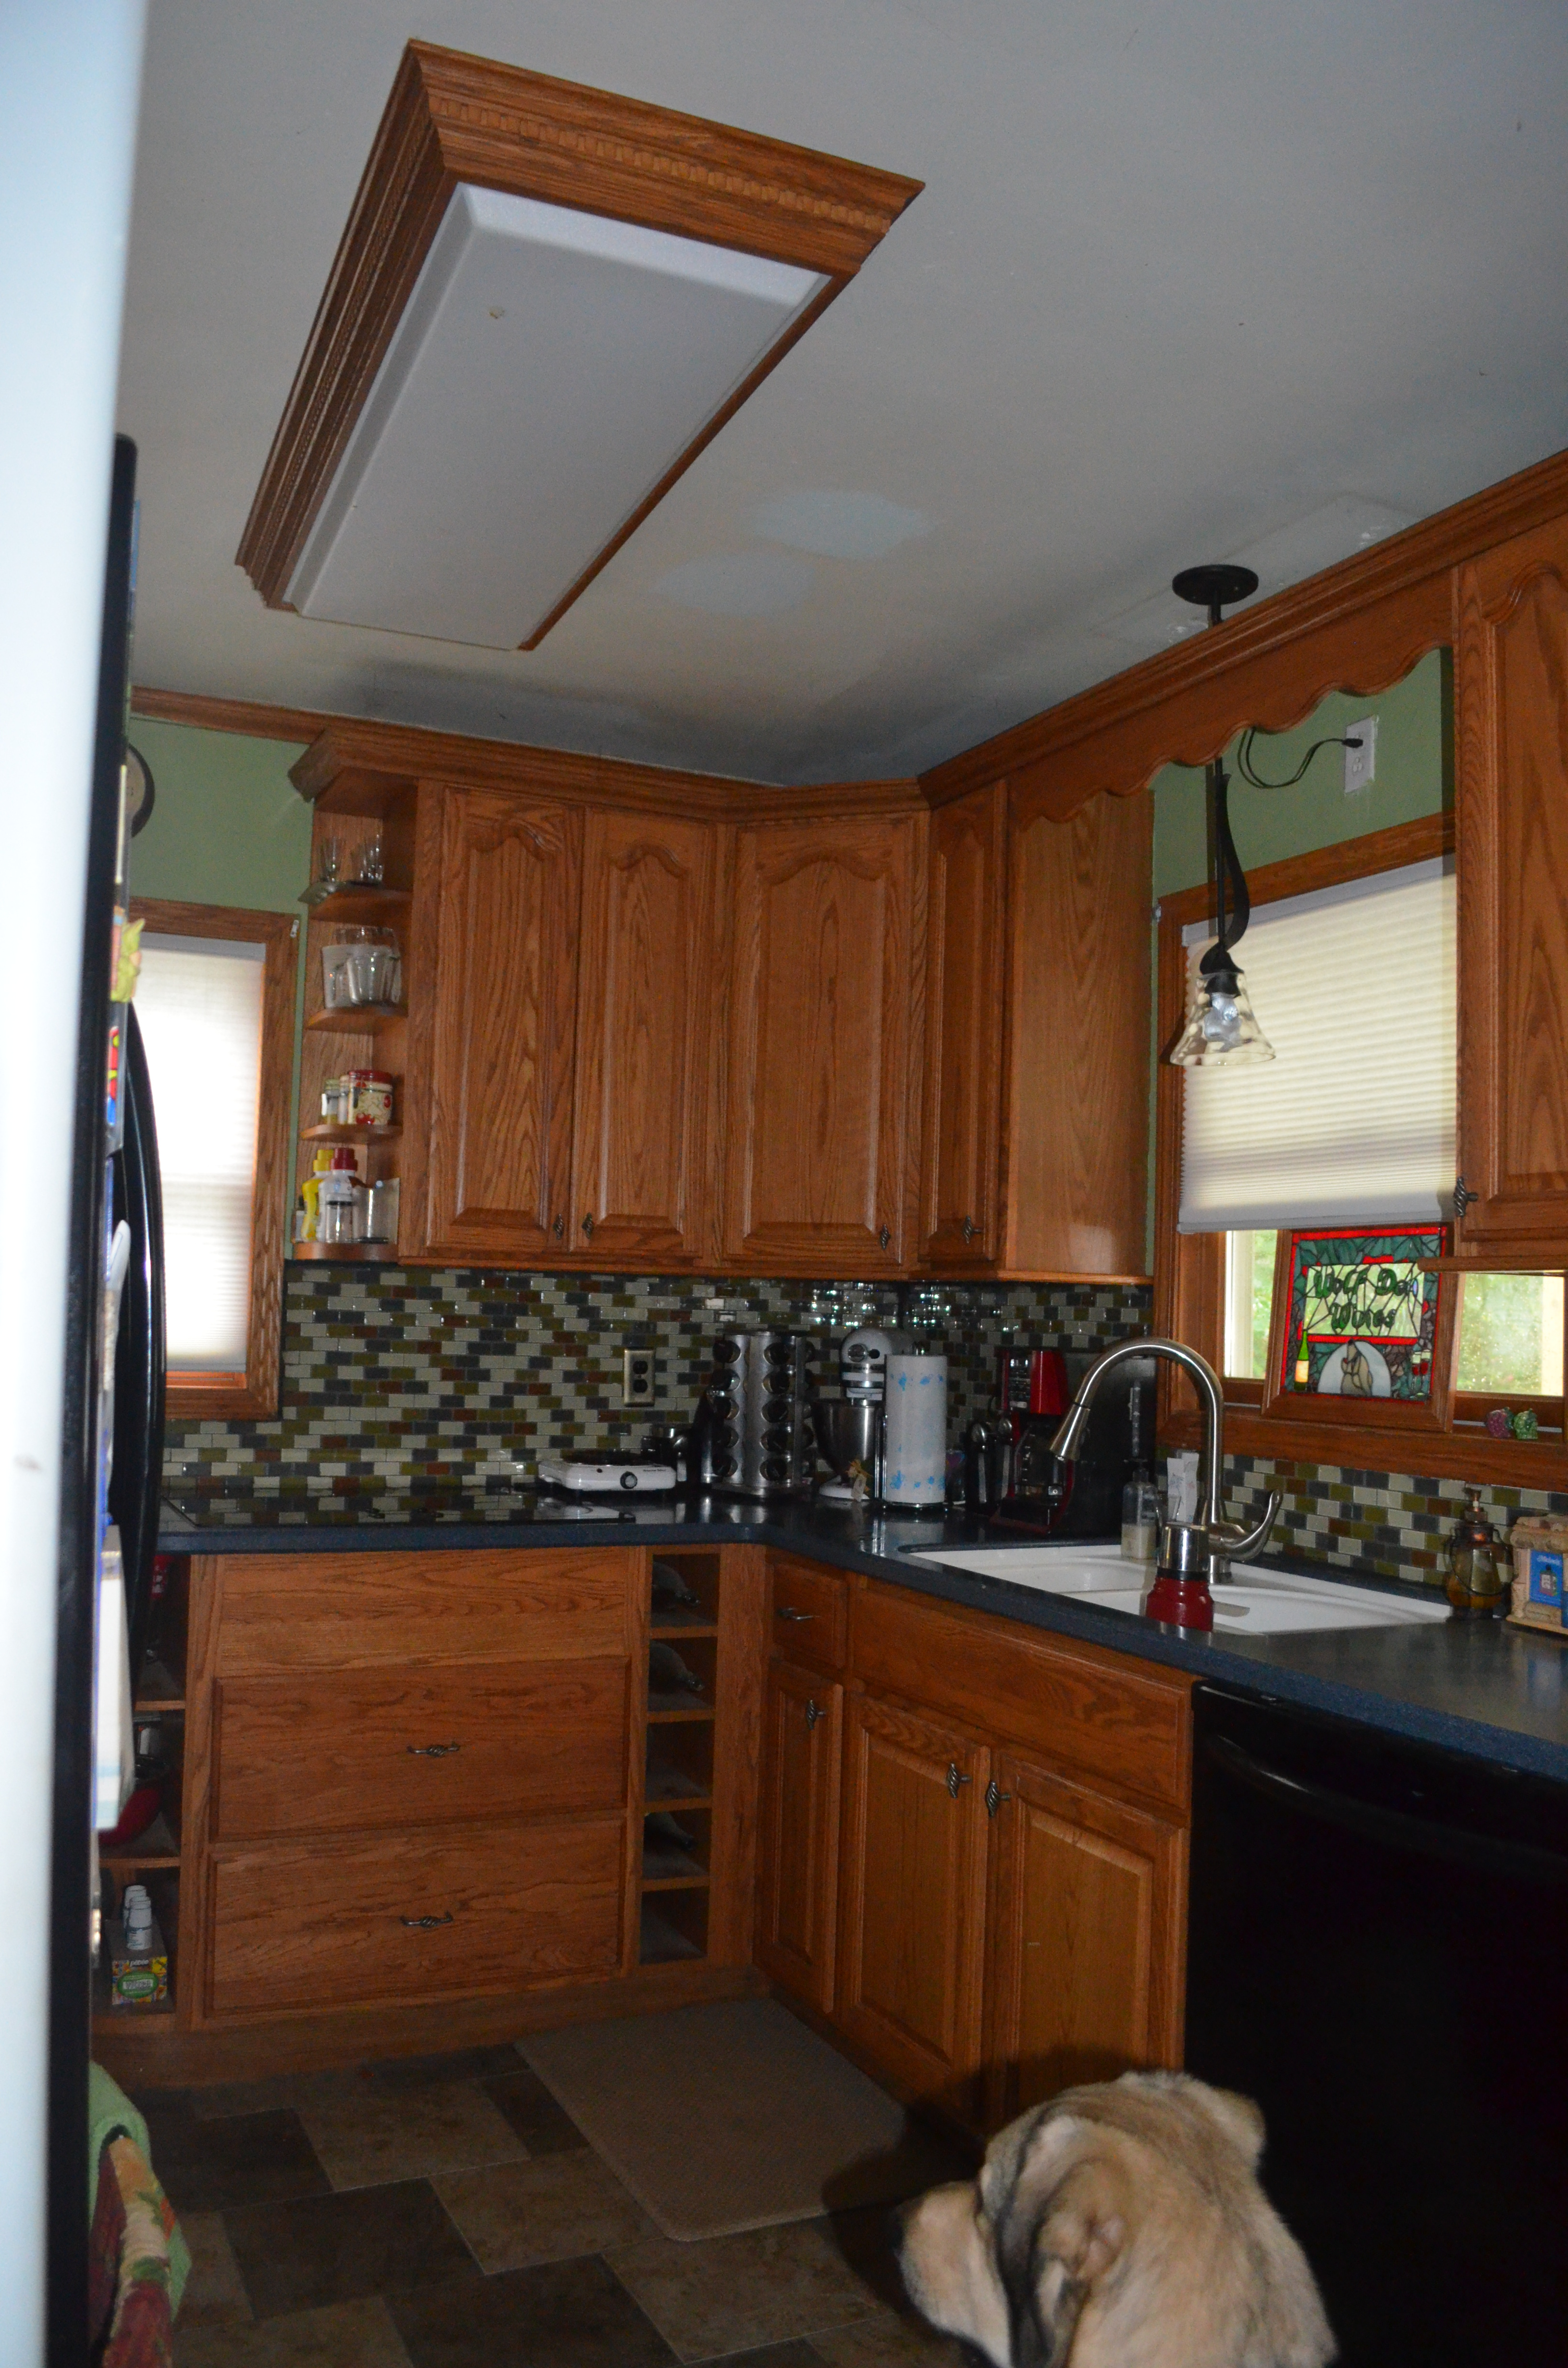 replacing the overhead florescent light in the kitchen kitchen fluorescent light covers DSC